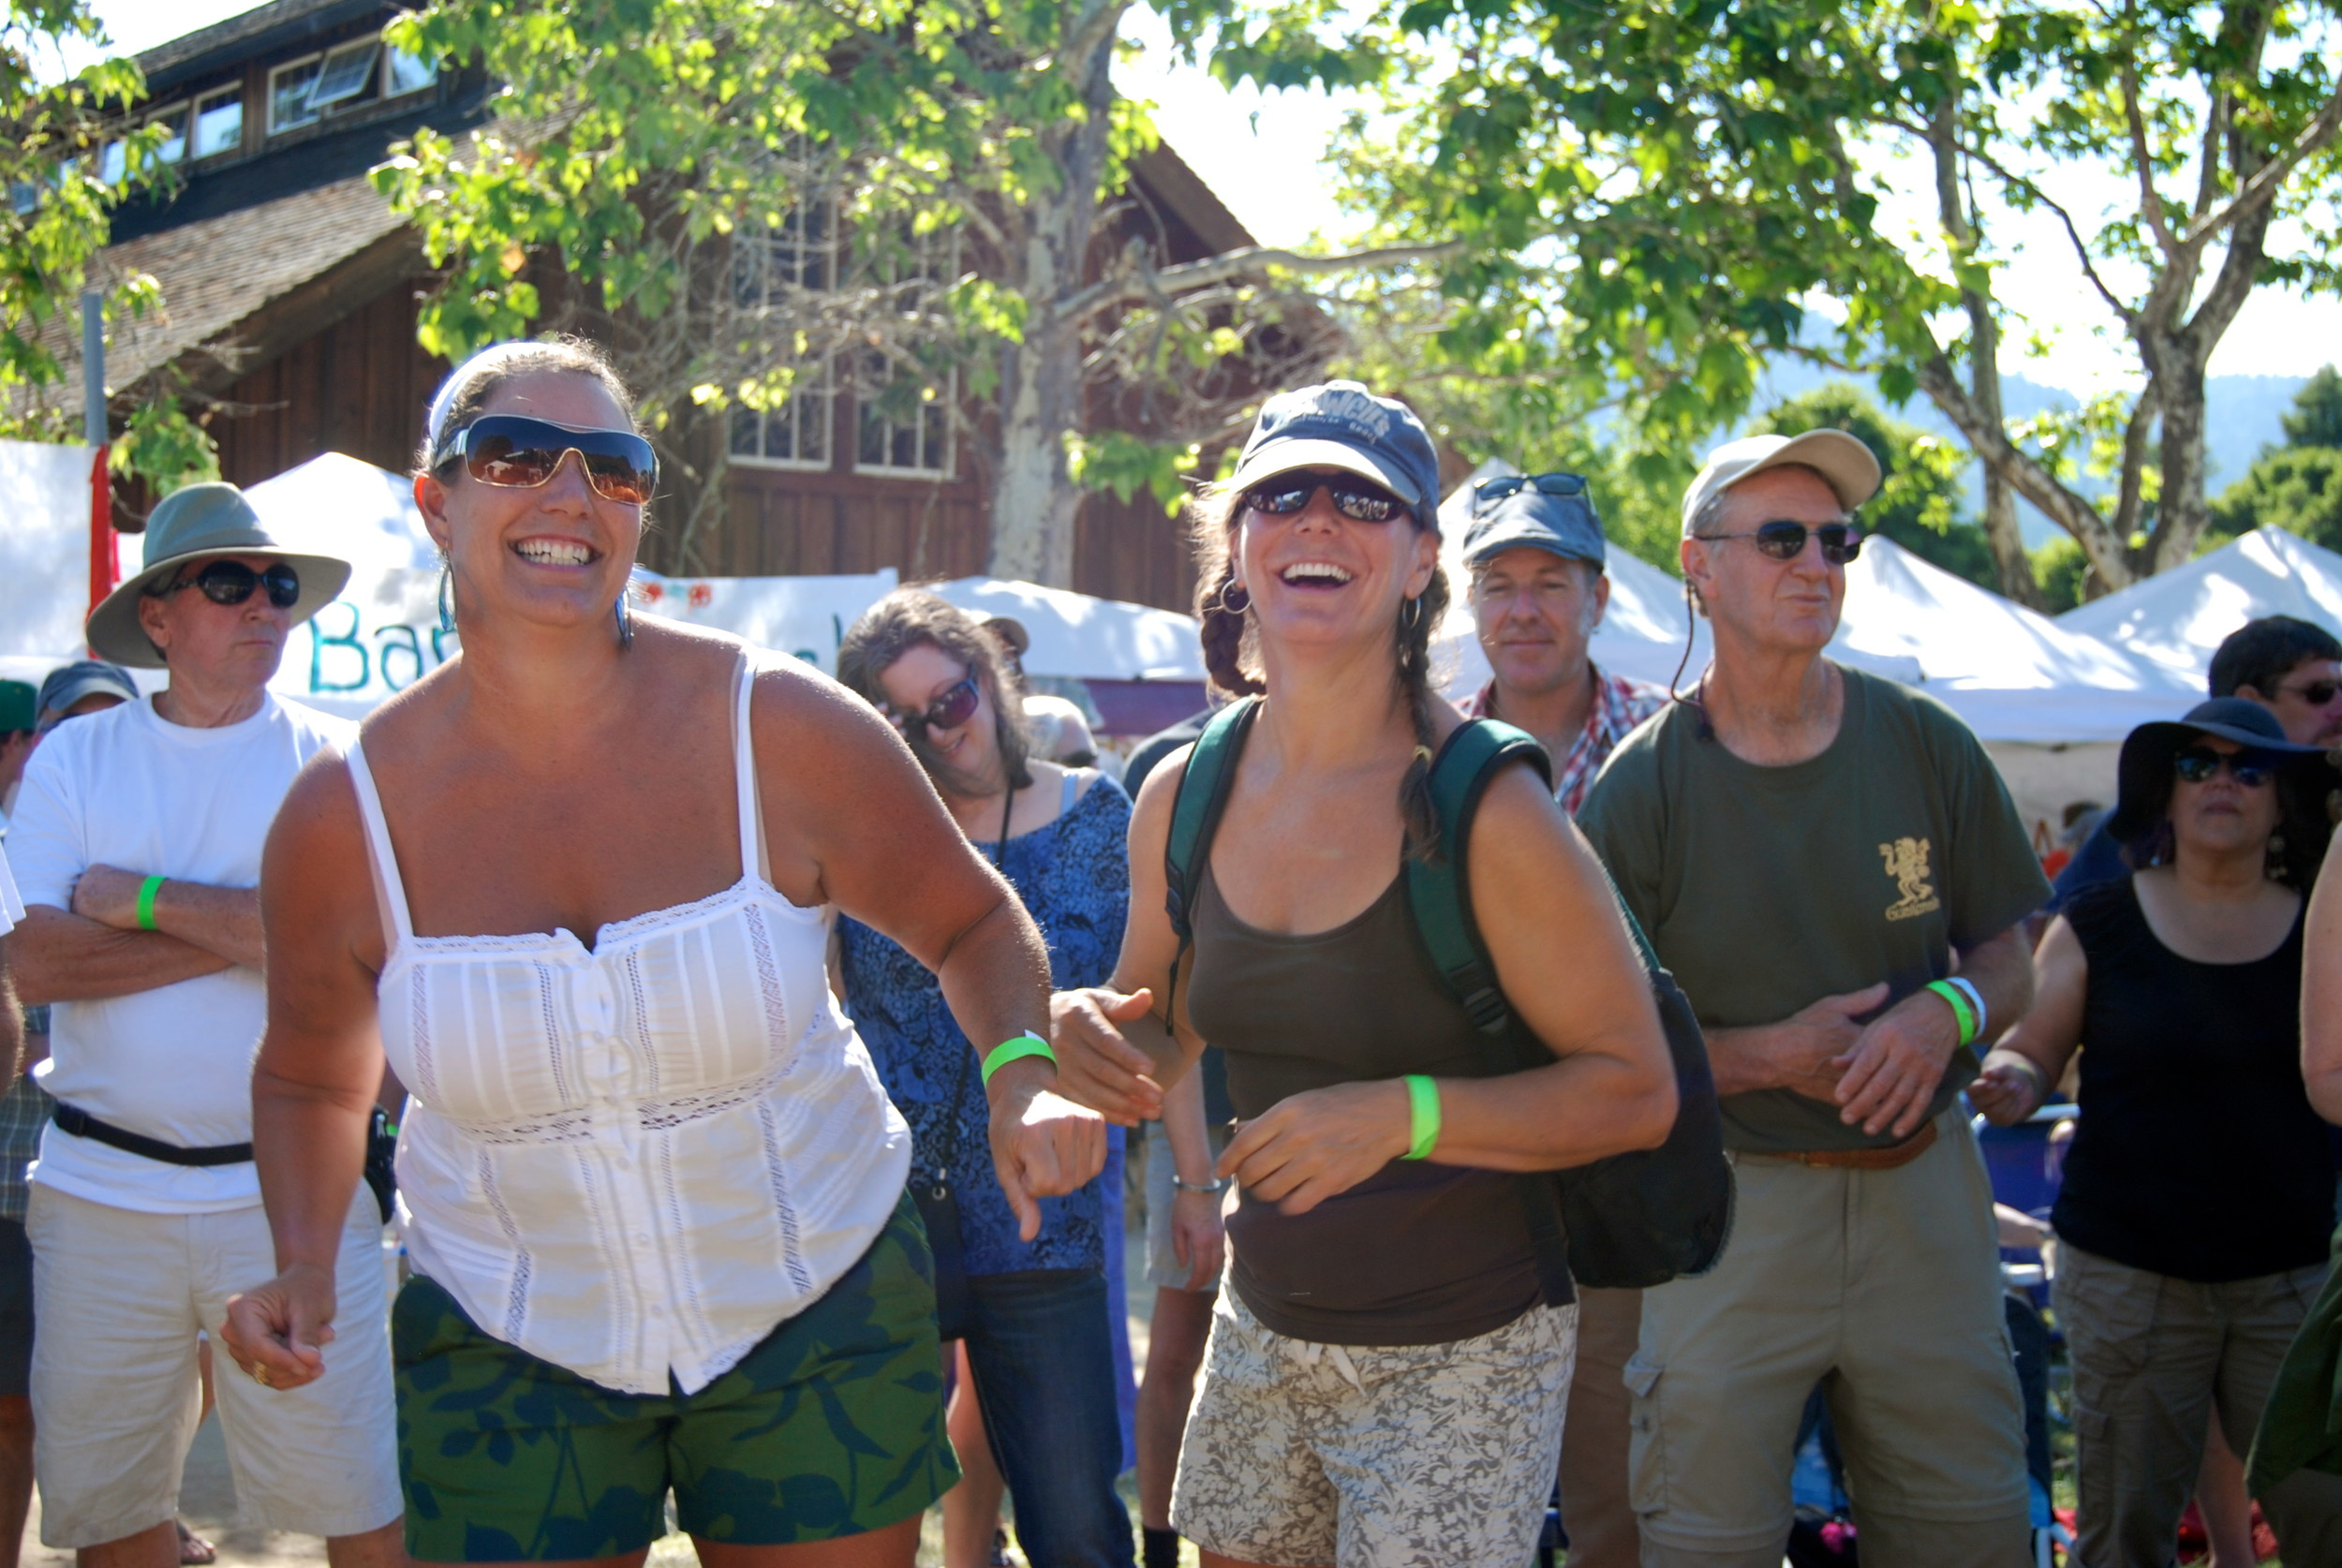 The Redwood Mountain Faire   June 3 & 4 at Roaring Camp   Buy Tickets